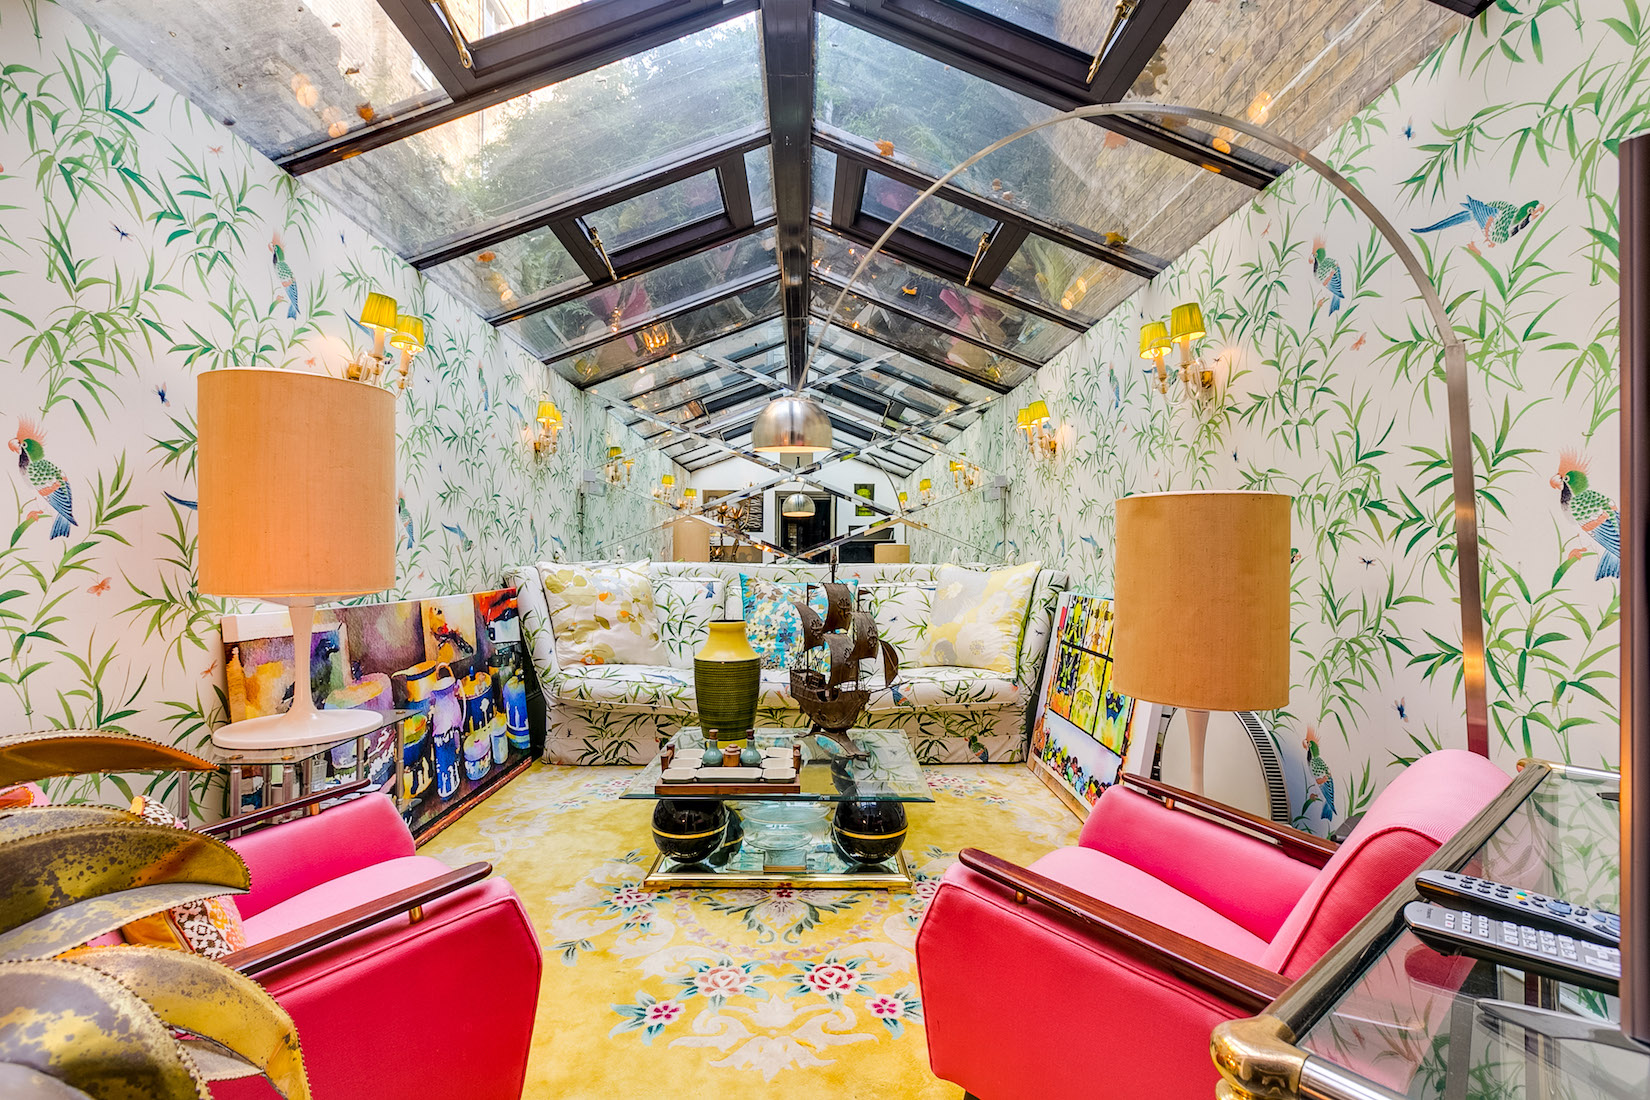 Be Inspired by These 10 Wild and Whimsical Spaces